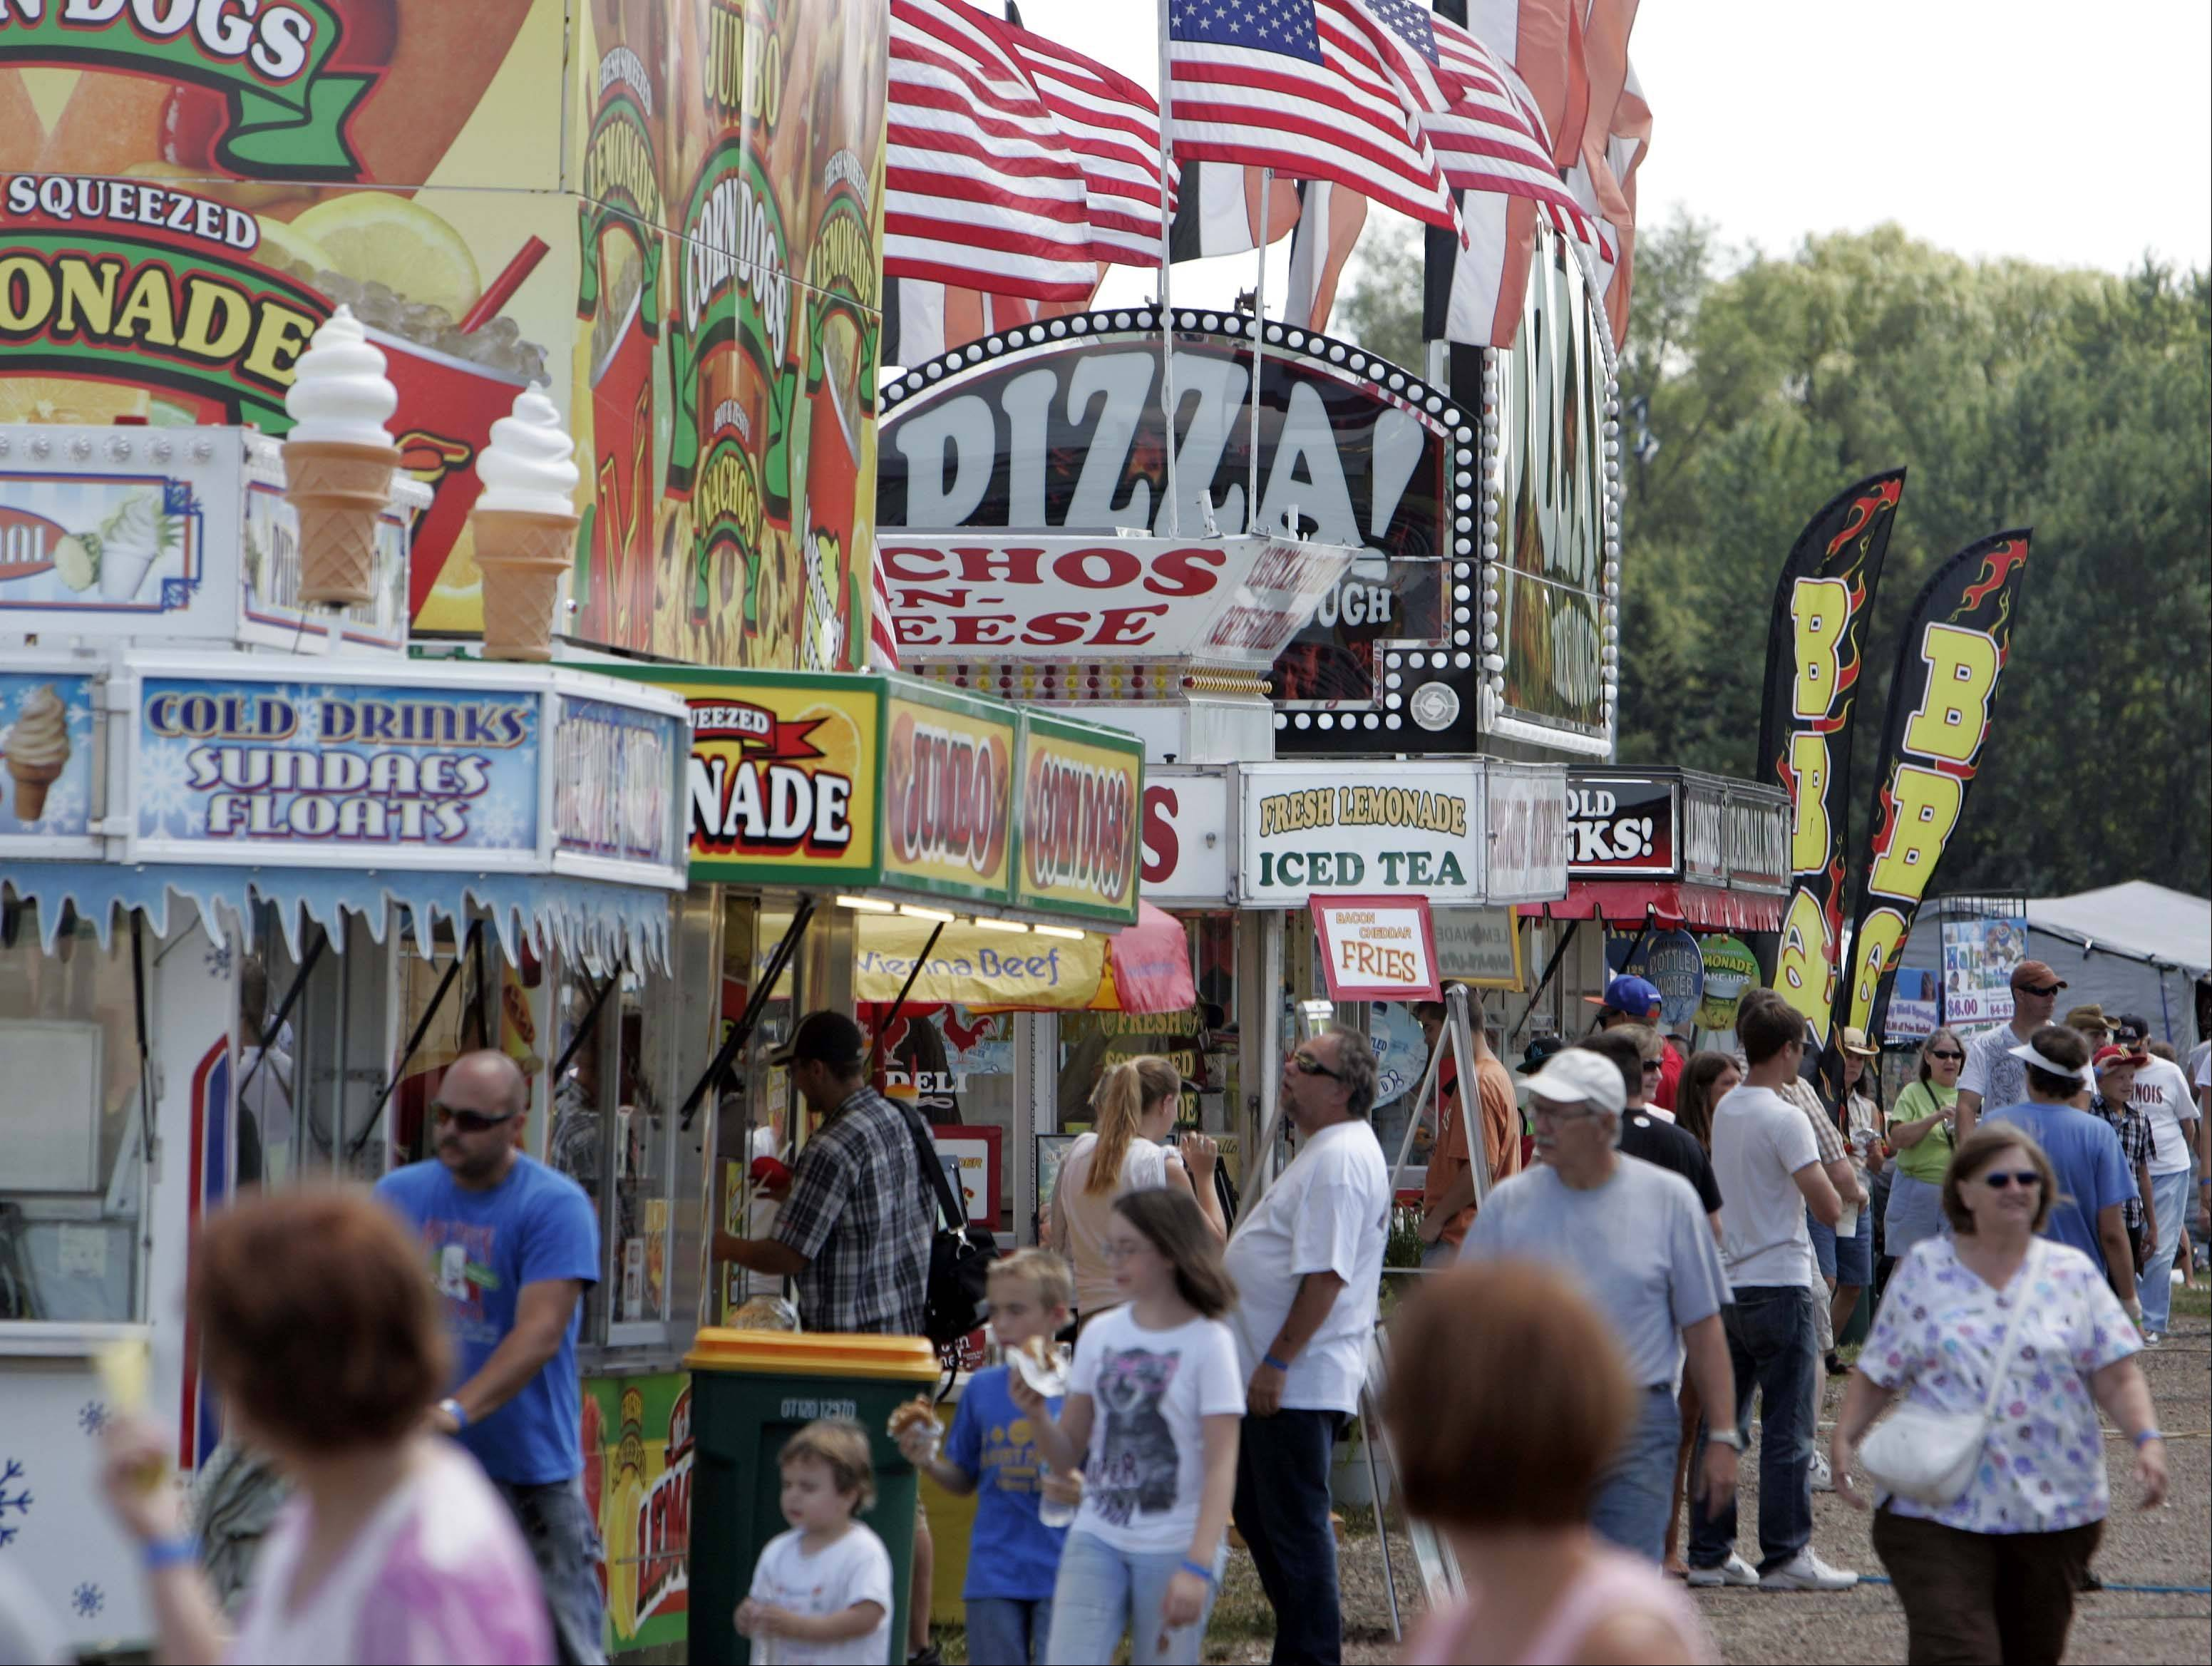 Hungry fairgoers line up for food at last year's McHenry County Fair. This year's fair opens Wednesday, July 31, and runs through Sunday, Aug. 4.